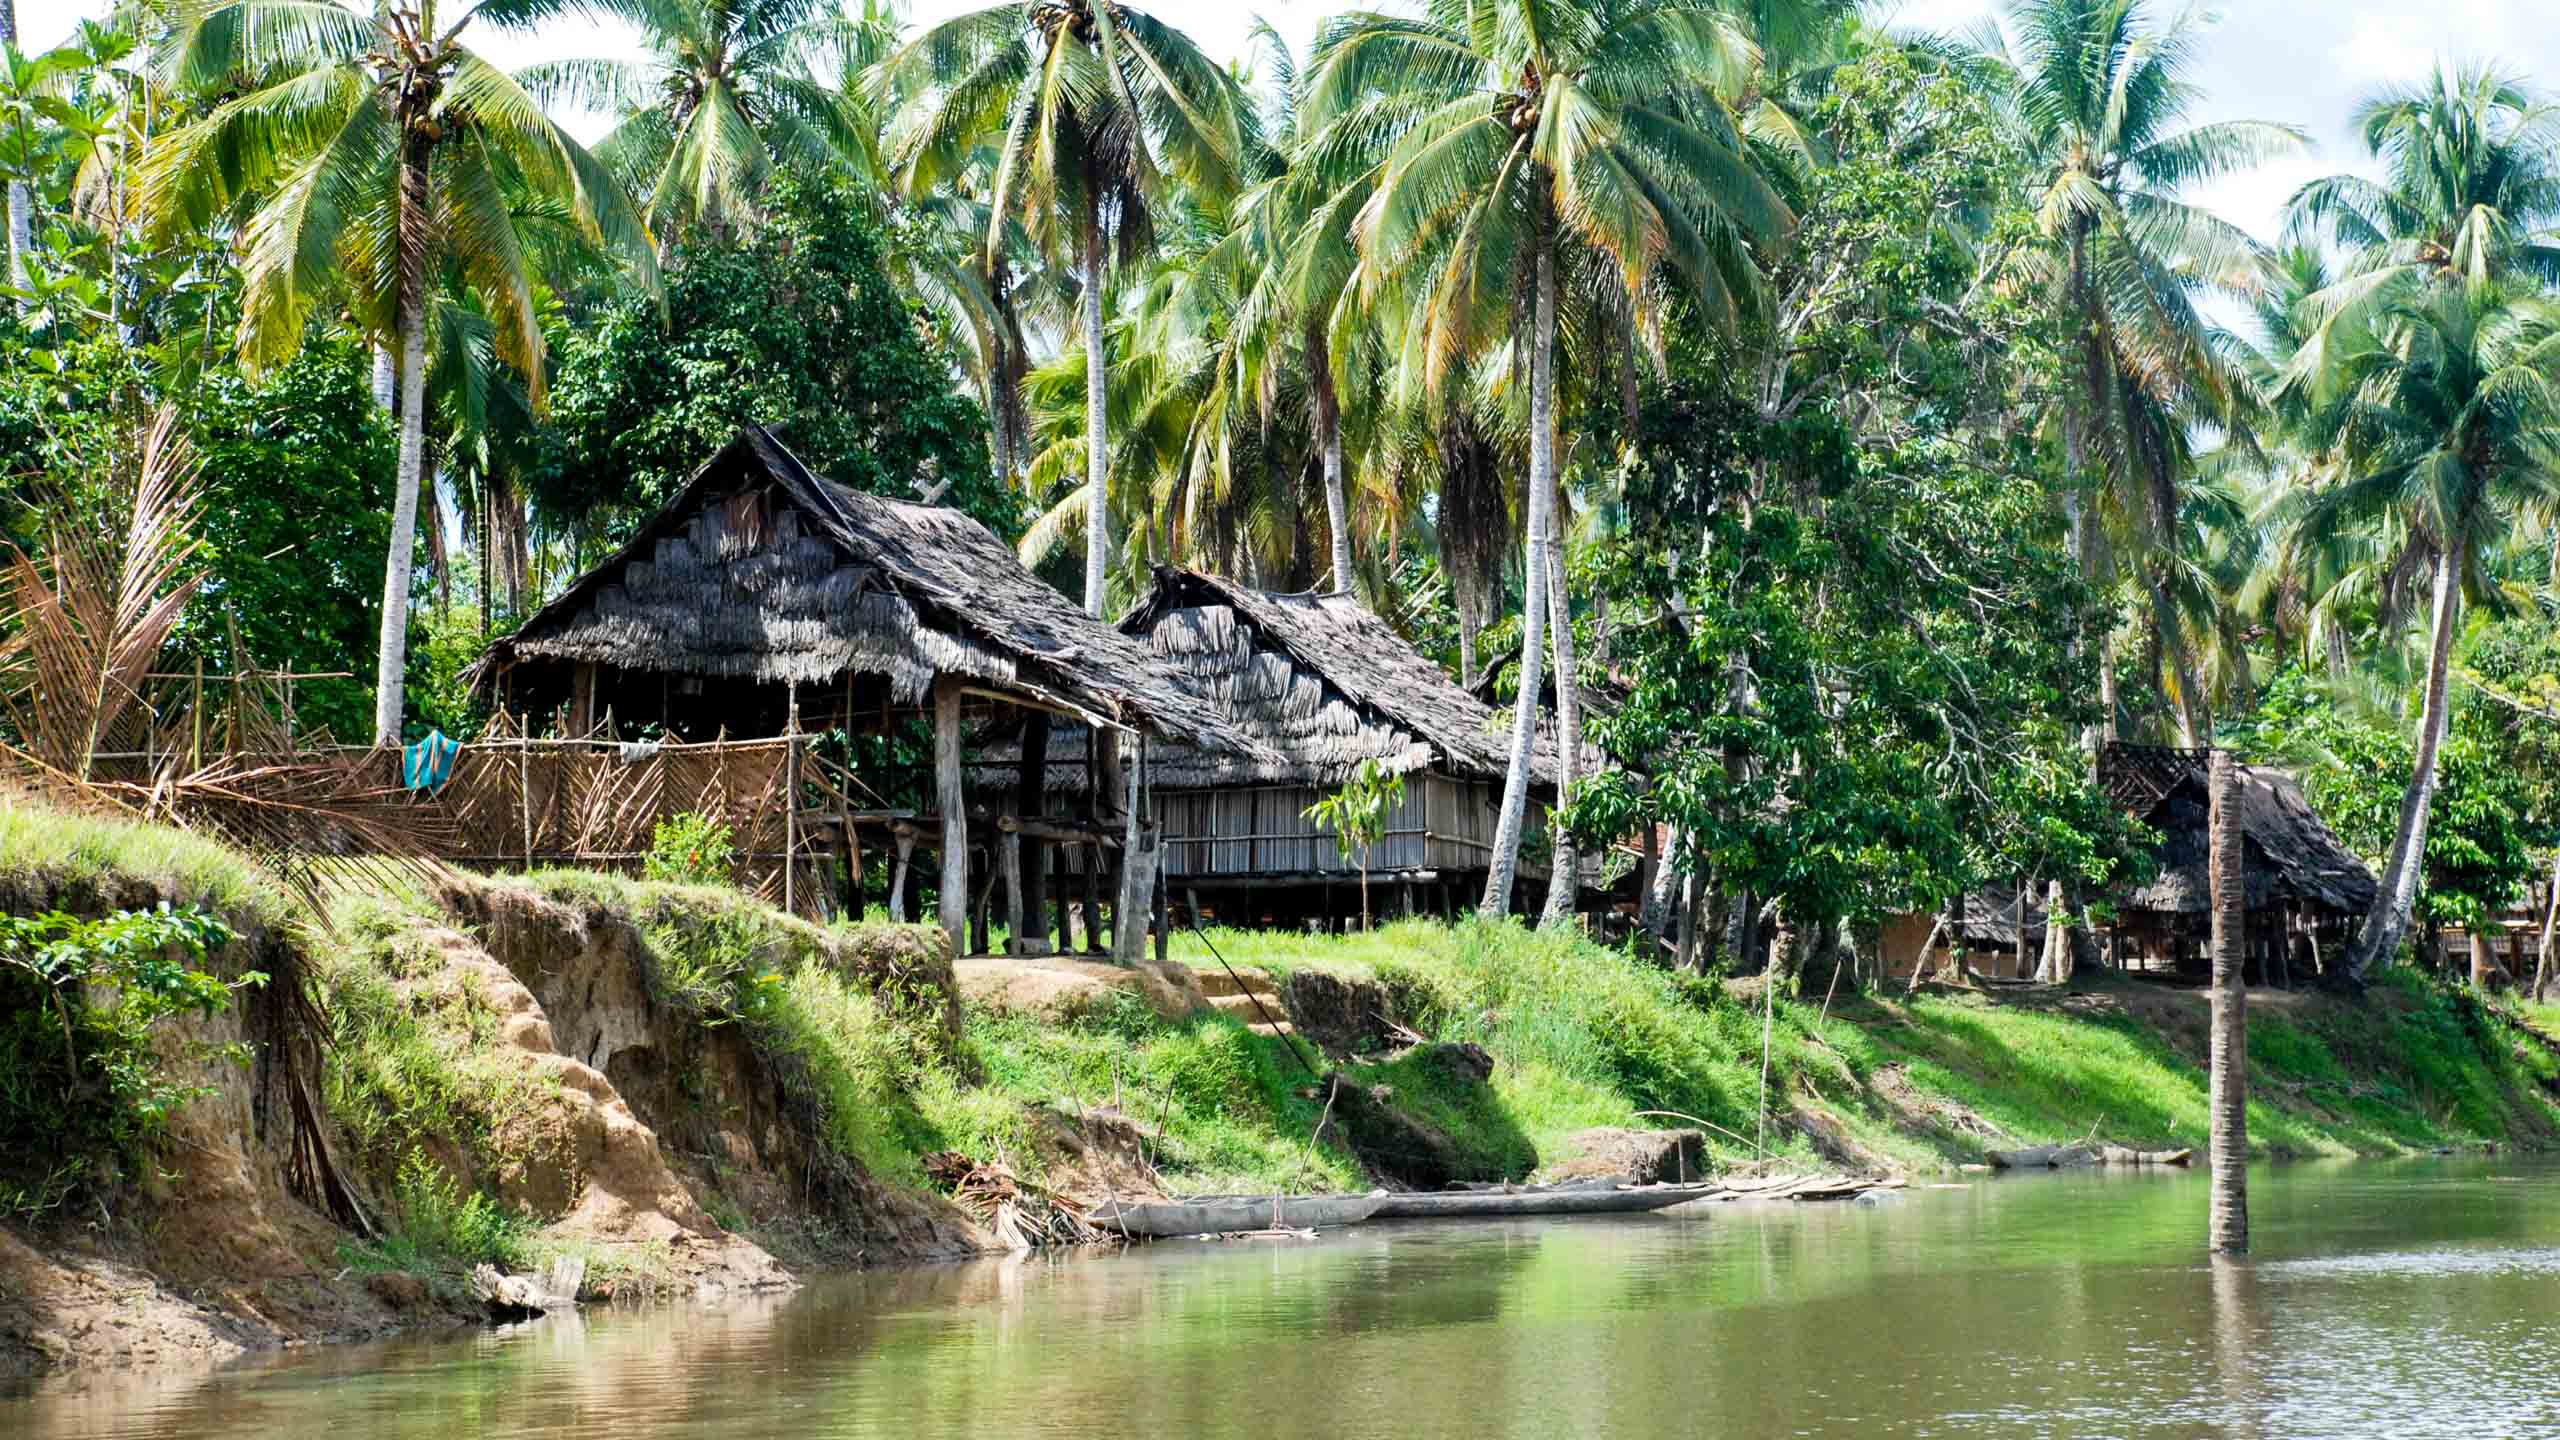 Houses on the bank of Papua New Guinea river